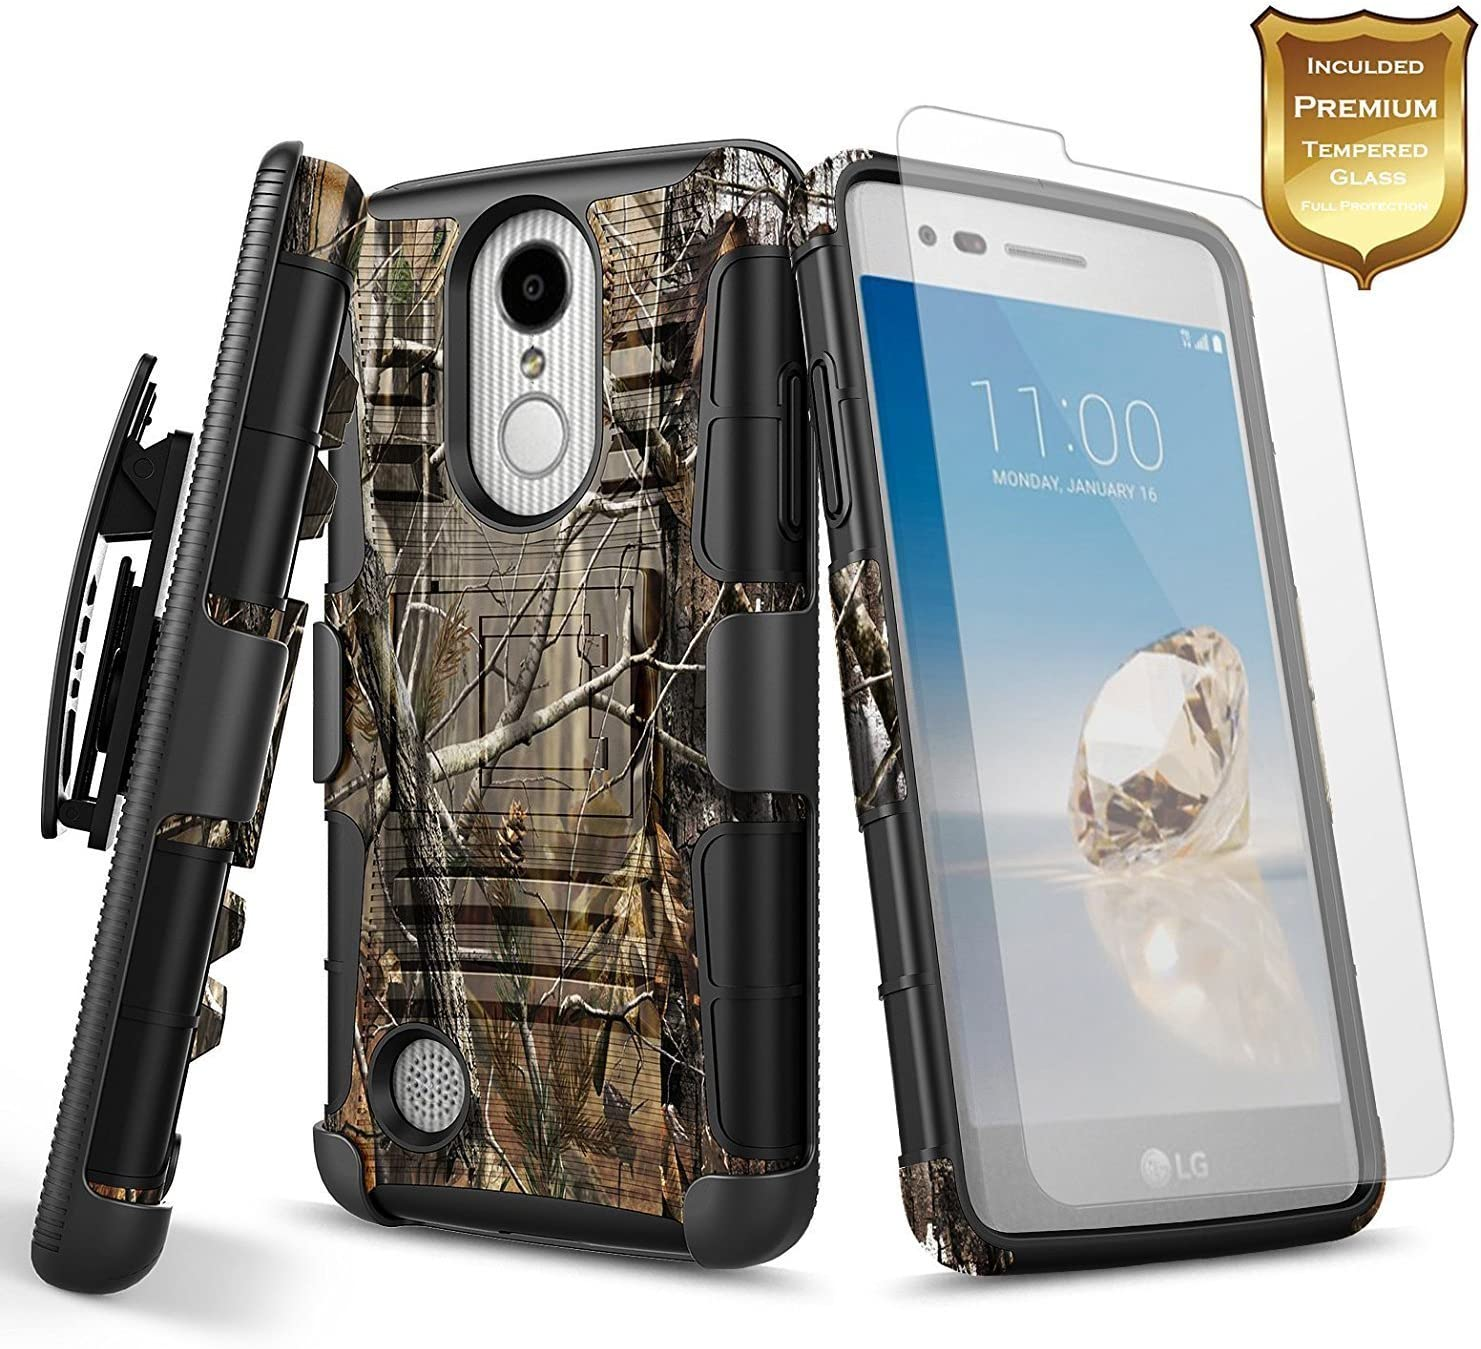 NageBee LG K20 Plus Case, LG K20 / LG K20V / K20 V / K10 2017 / Harmony/LG Grace 4G LTE with [Tempered Glass Screen Protector], [Heavy Duty] Shockproof [Holster Belt Clip] Kickstand Combo Case -Camo